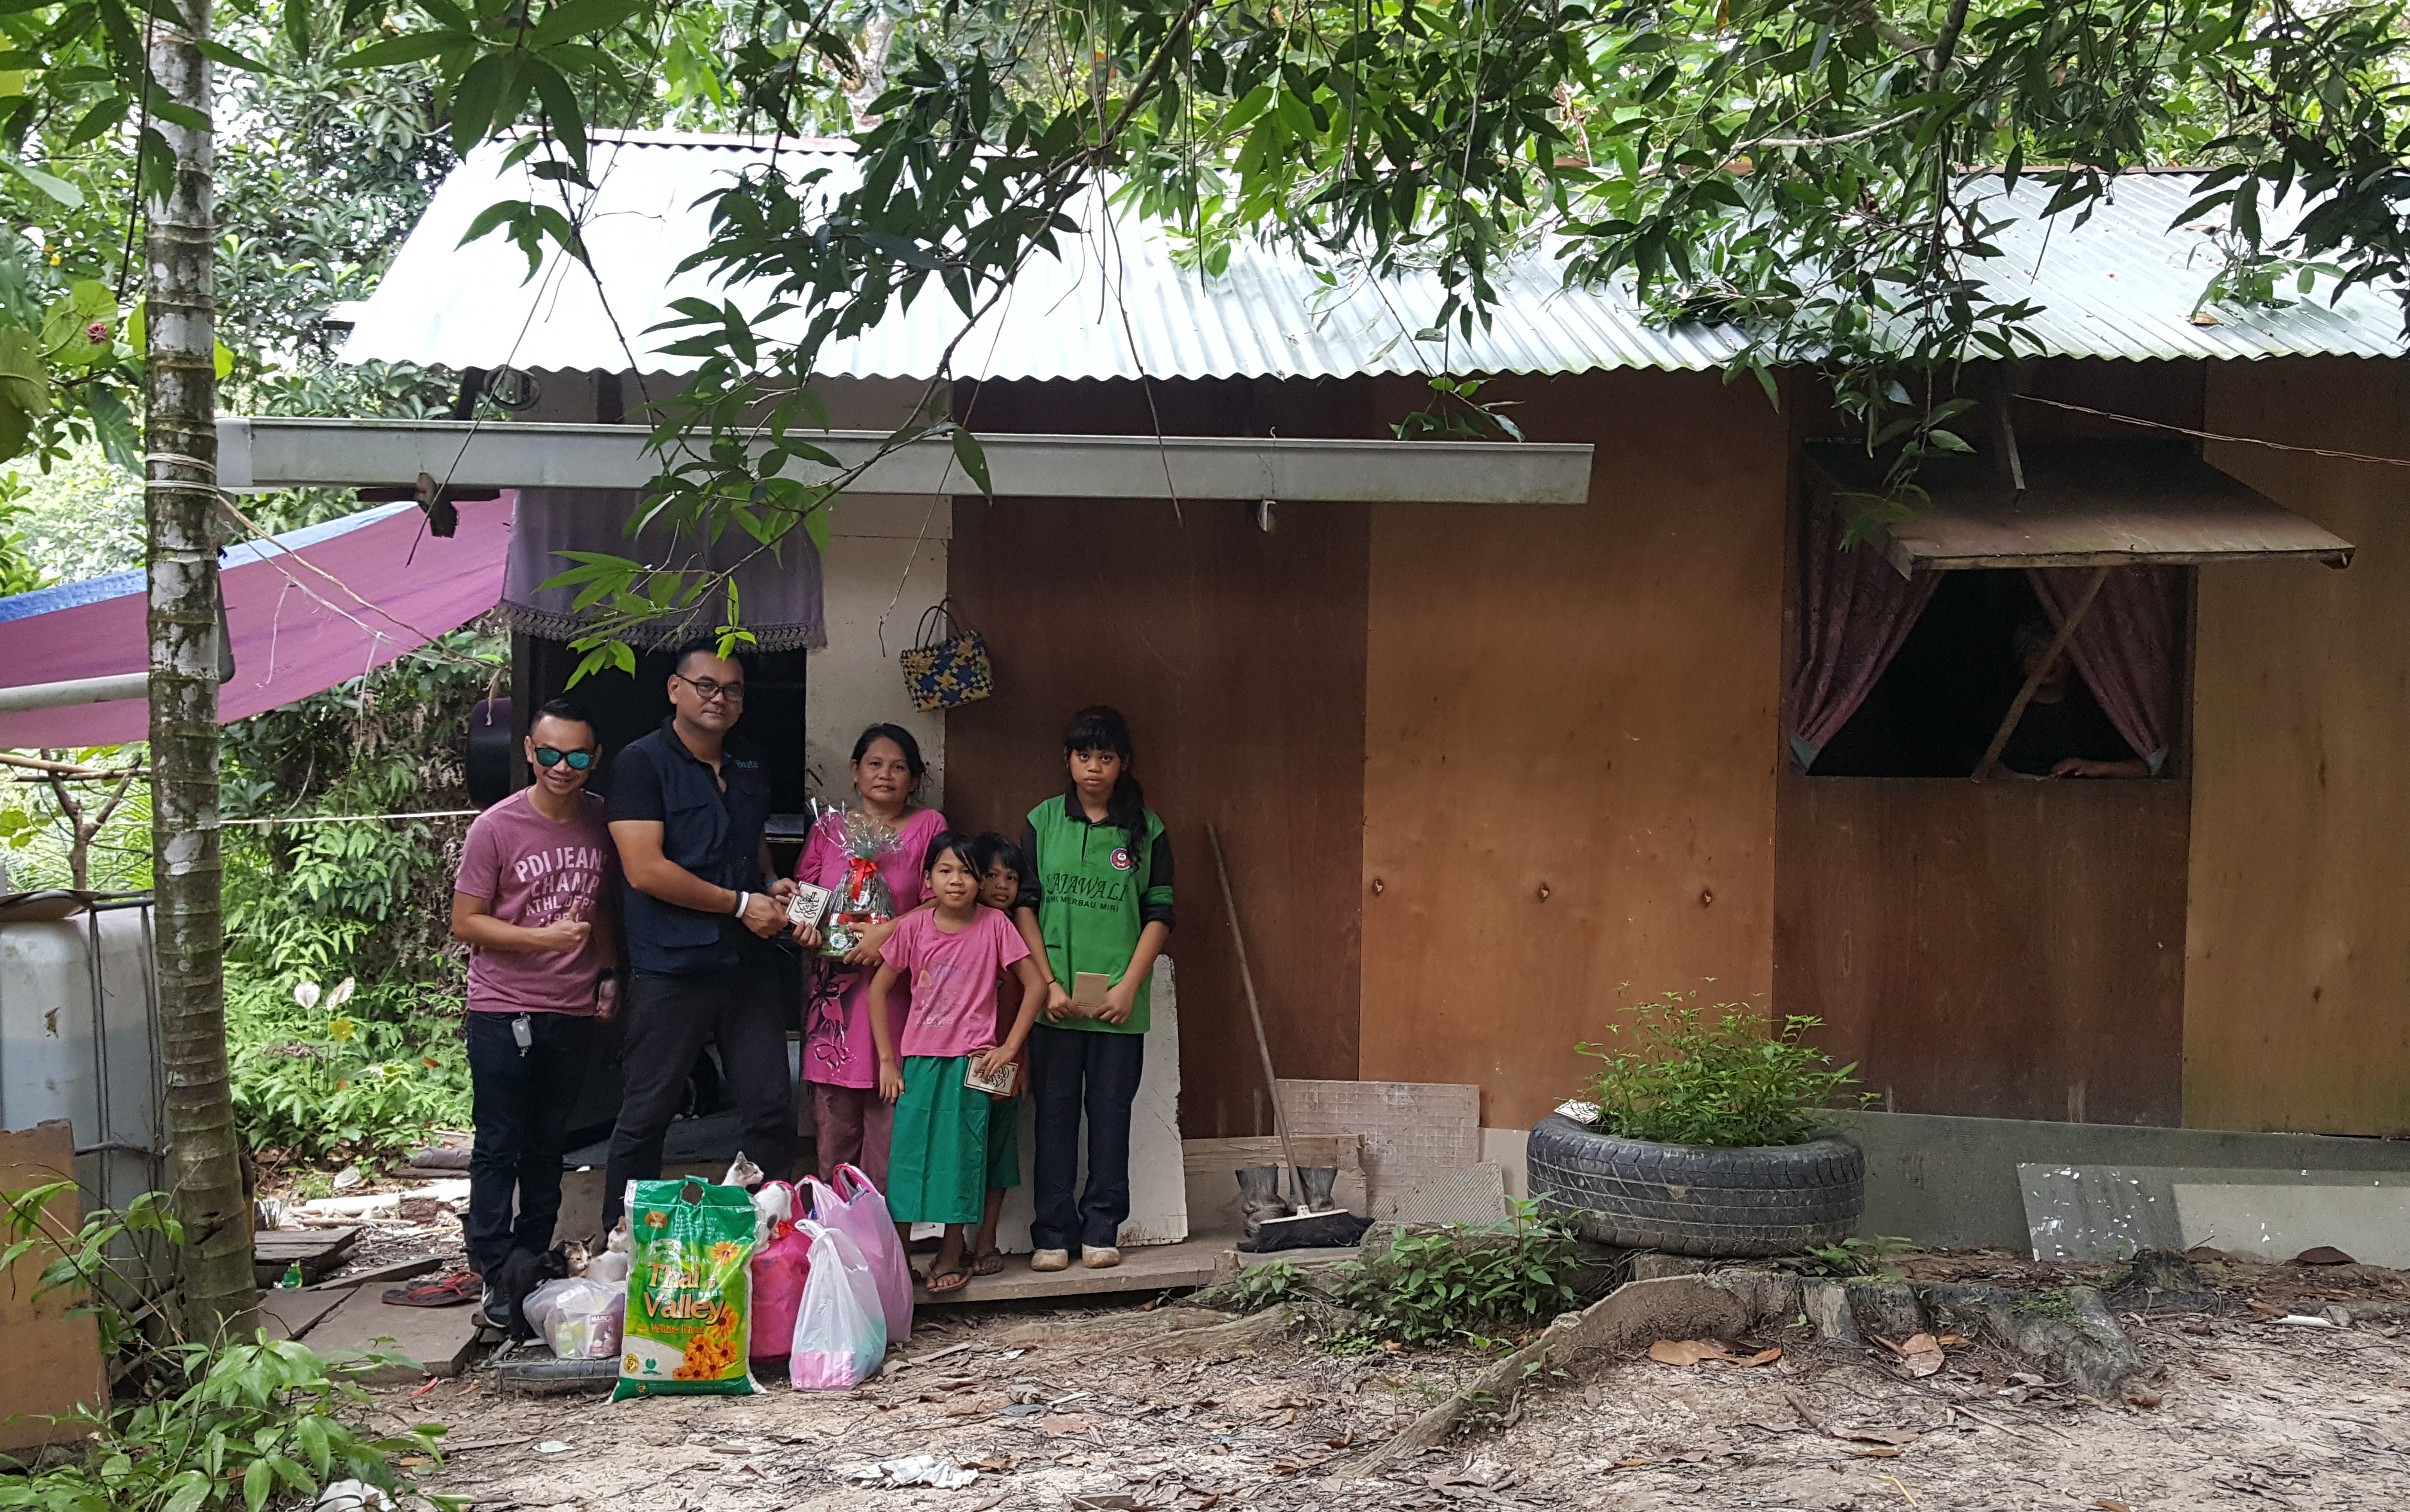 Extrameal worked with Bintulu Welfare to get the kids registered in school.